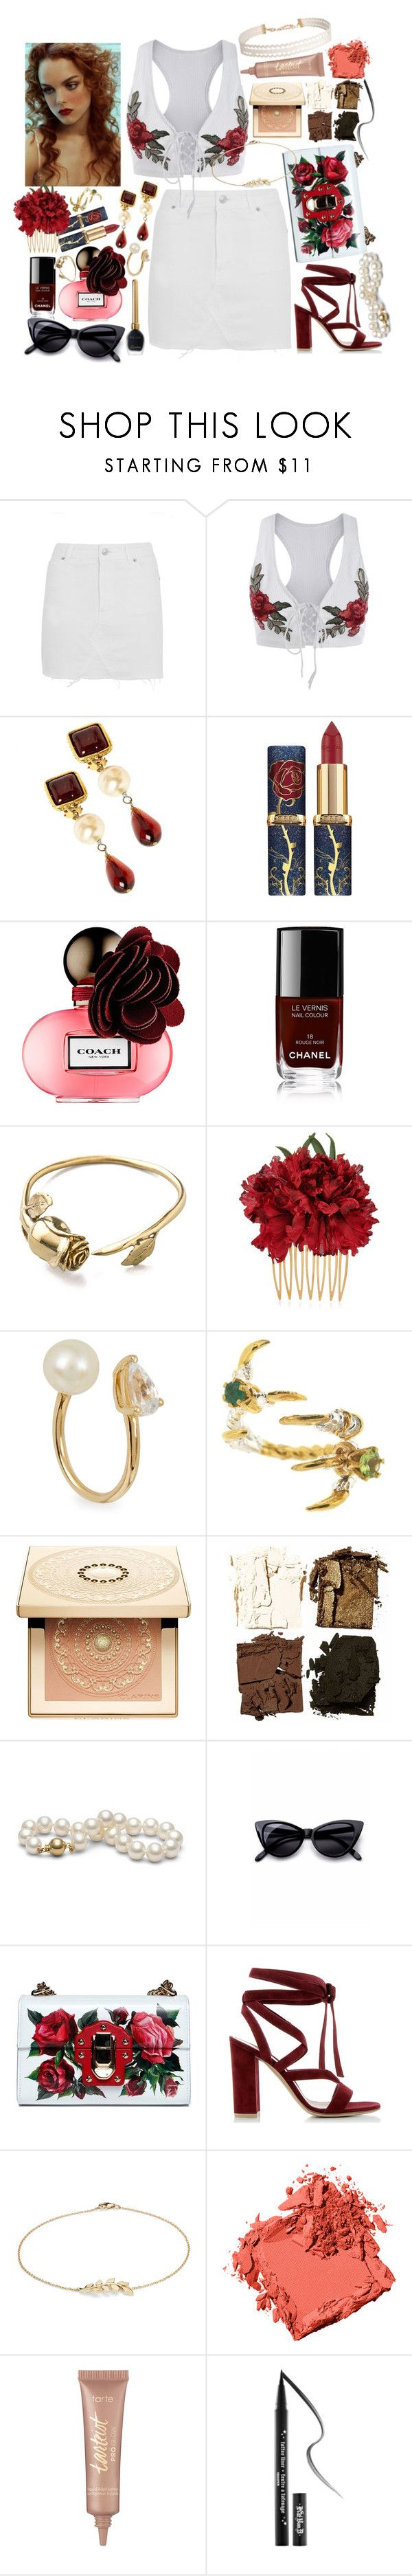 """Grigio Girls - Lady Gaga"" by leo8august ❤ liked on Polyvore featuring Topshop, Chanel, Coach, Monserat De Lucca, Dolce&Gabbana, Anissa Kermiche, Tessa Metcalfe, Clarins, Illamasqua and Retrò"